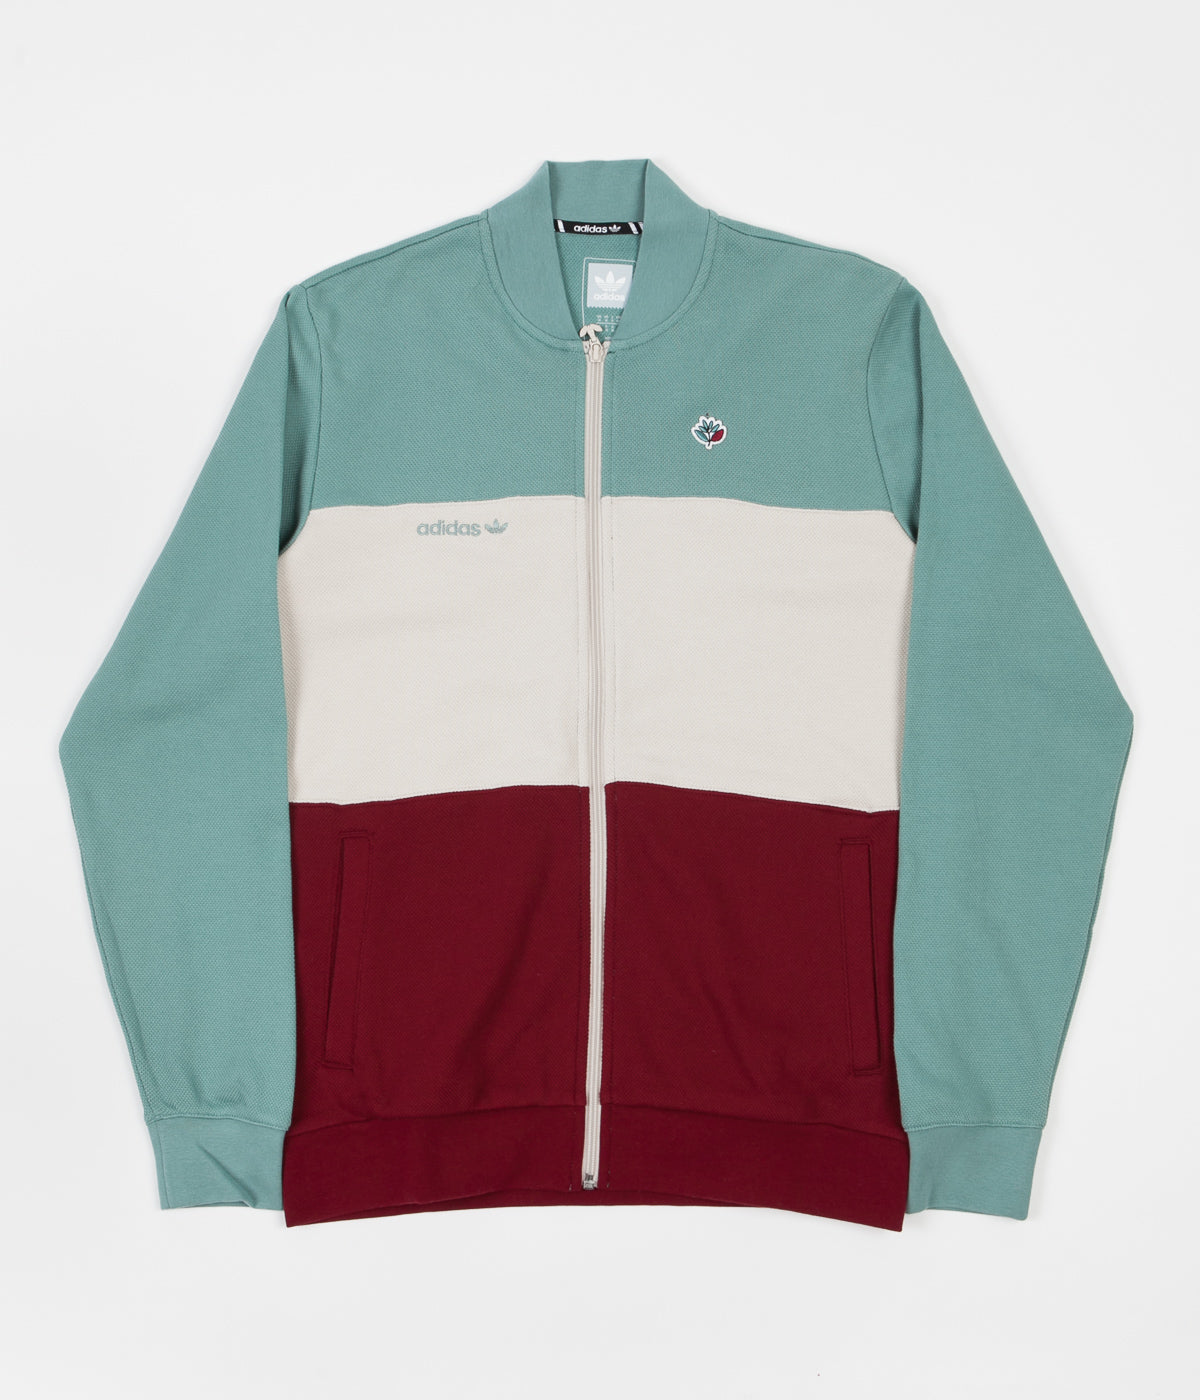 Adidas x Magenta Jacket - Vapour Steel / Clear Brown / Collegiate Burgundy